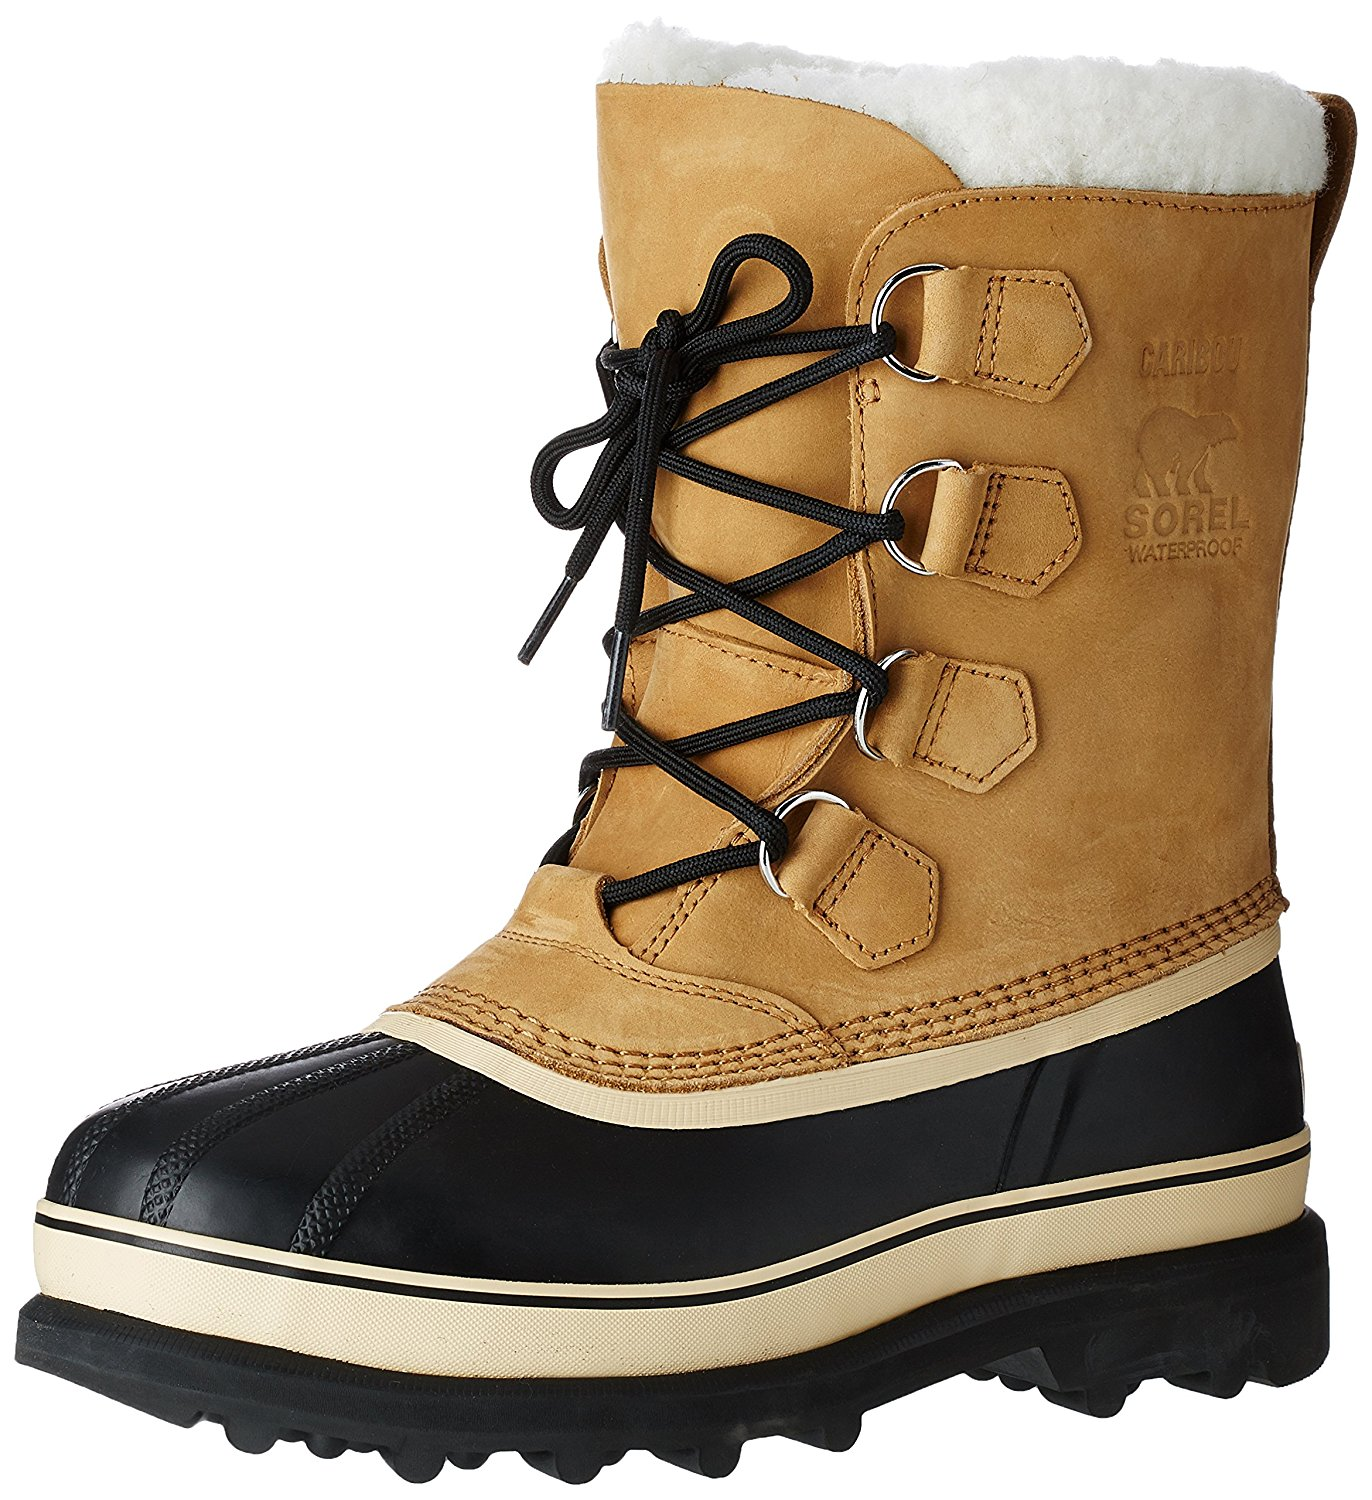 sorel boots sorel menu0027s caribou buff winter boot: amazon.ca: shoes u0026 handbags XTUEIHN